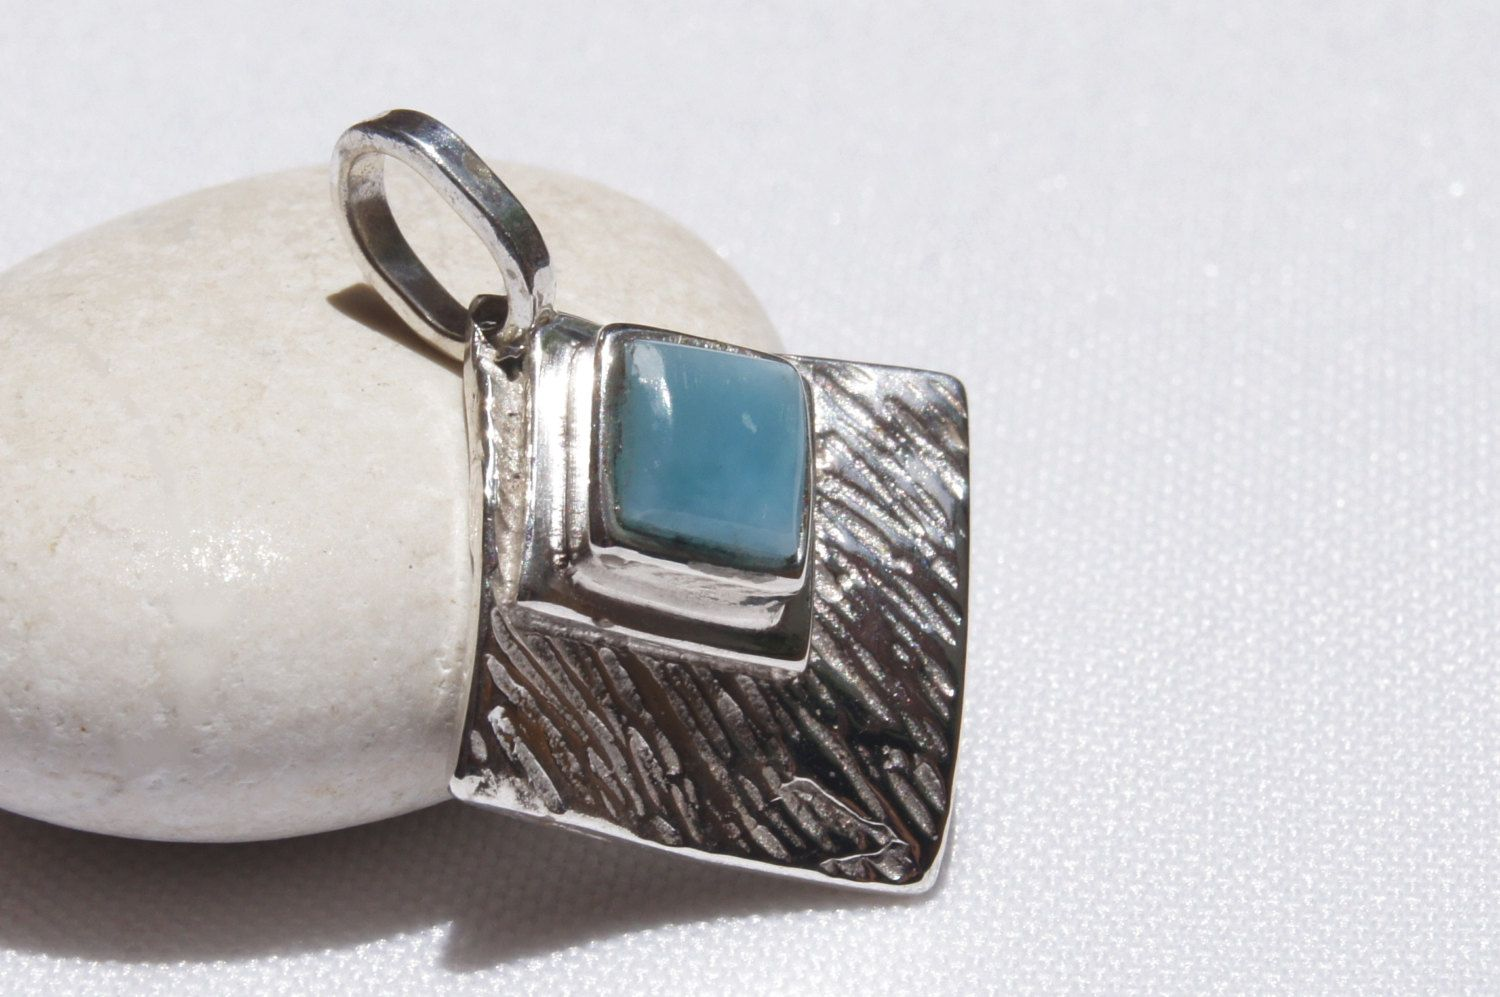 Original And Genuine Dominican Handcrafted AA Marbled Square Shape Larimar Stone .925 Larimar Pendant Sterling Silver Pendant Jewelry